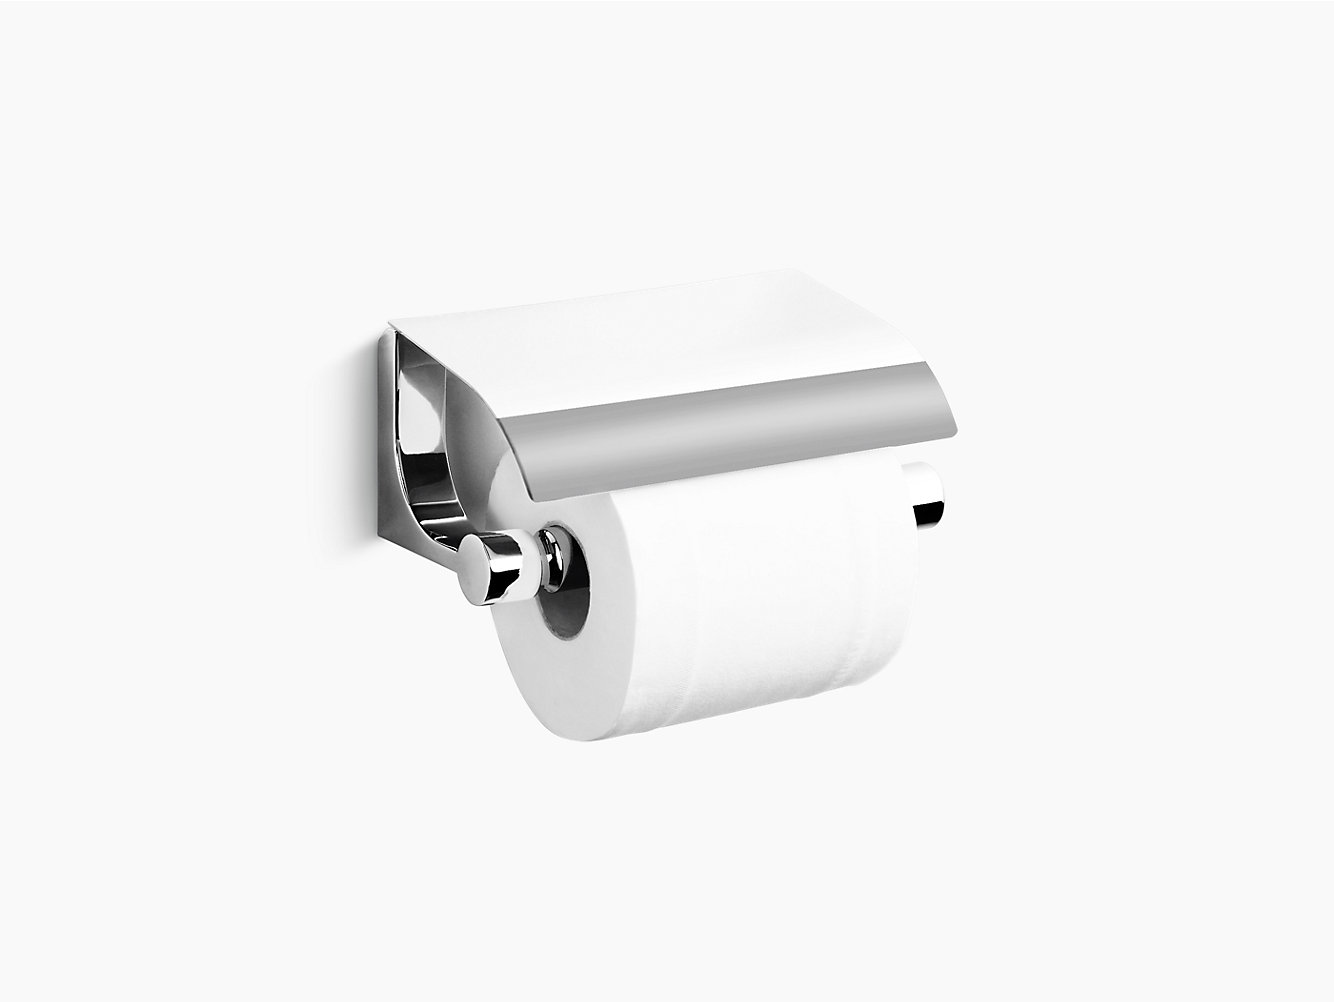 a square bn sleek bathroom design toilet details curved paired contemporary holderthis complement paper tissue albury holder to features collection with